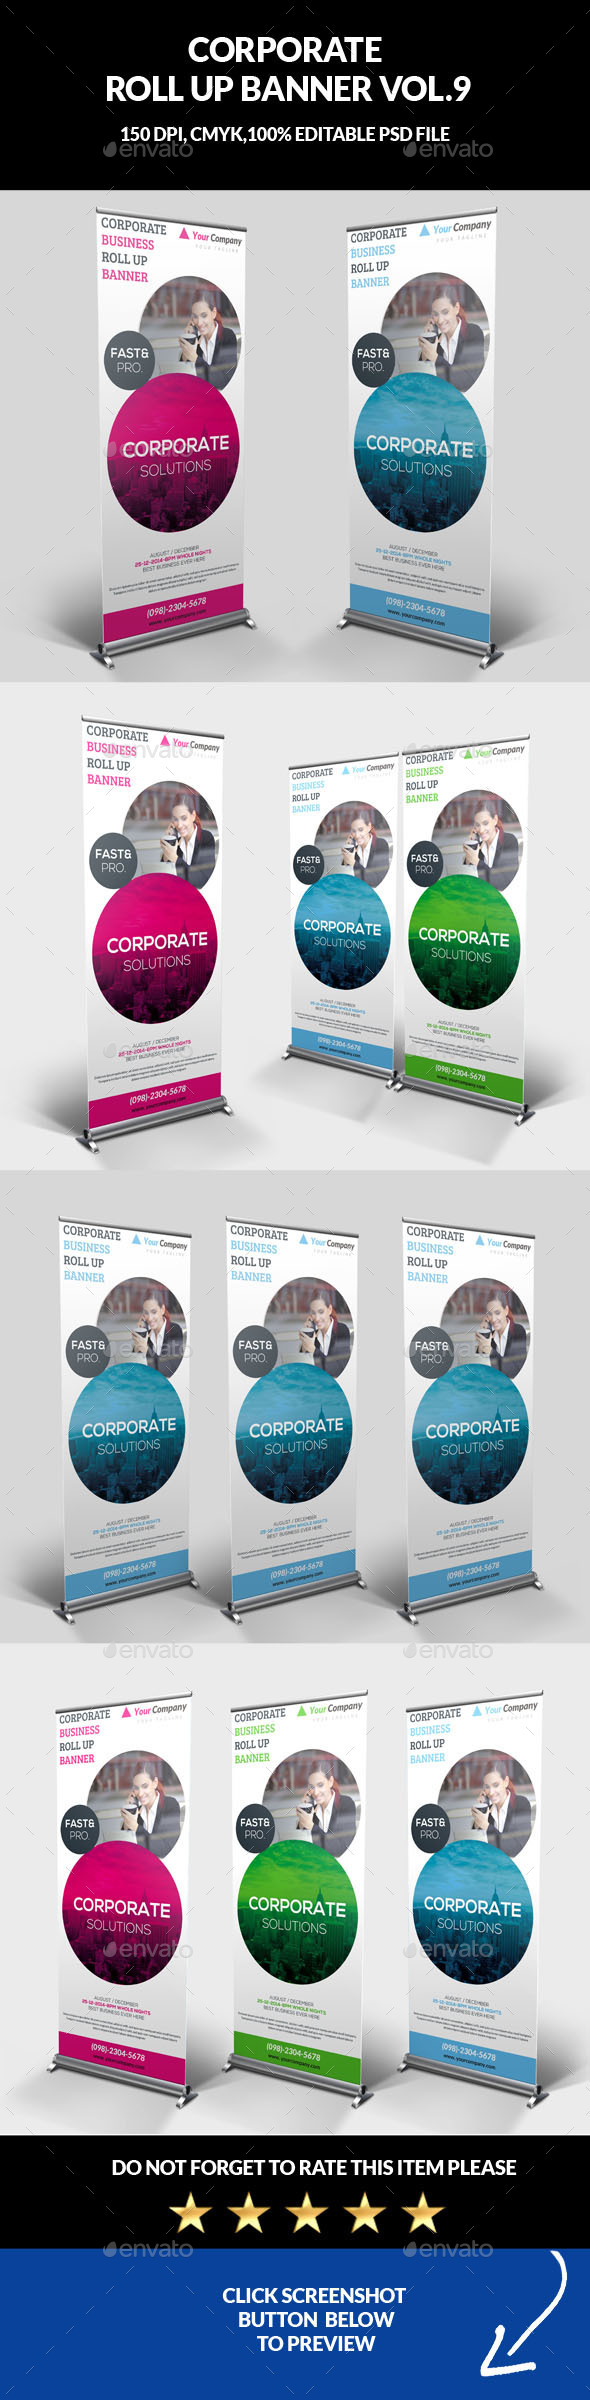 Corporate Business Roll Up Banner Vol.9 - Signage Print Templates